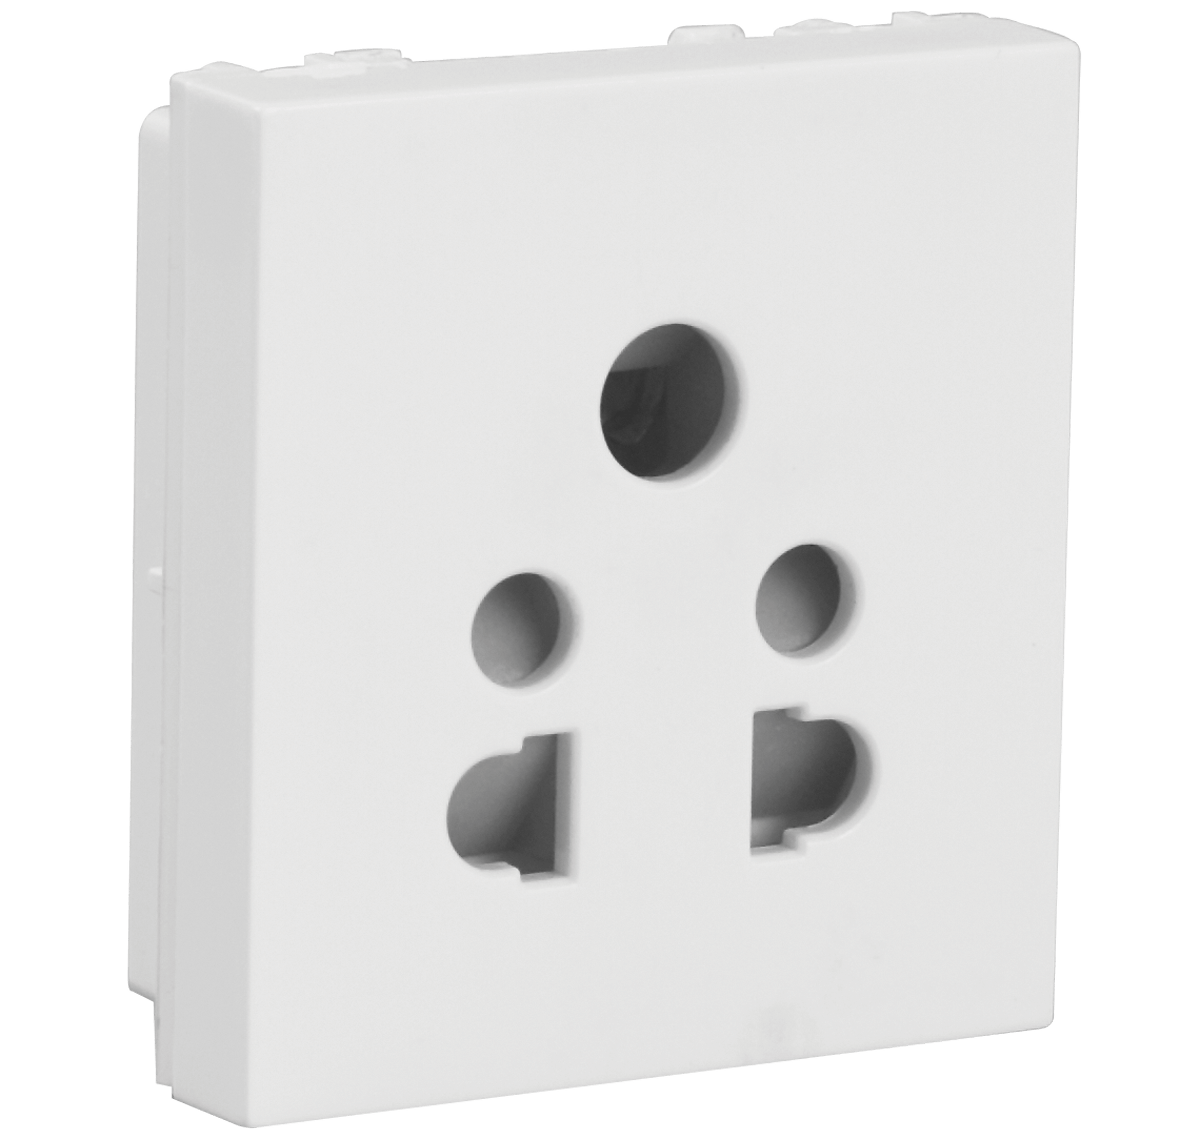 6A 5 Pin Shuttered Socket